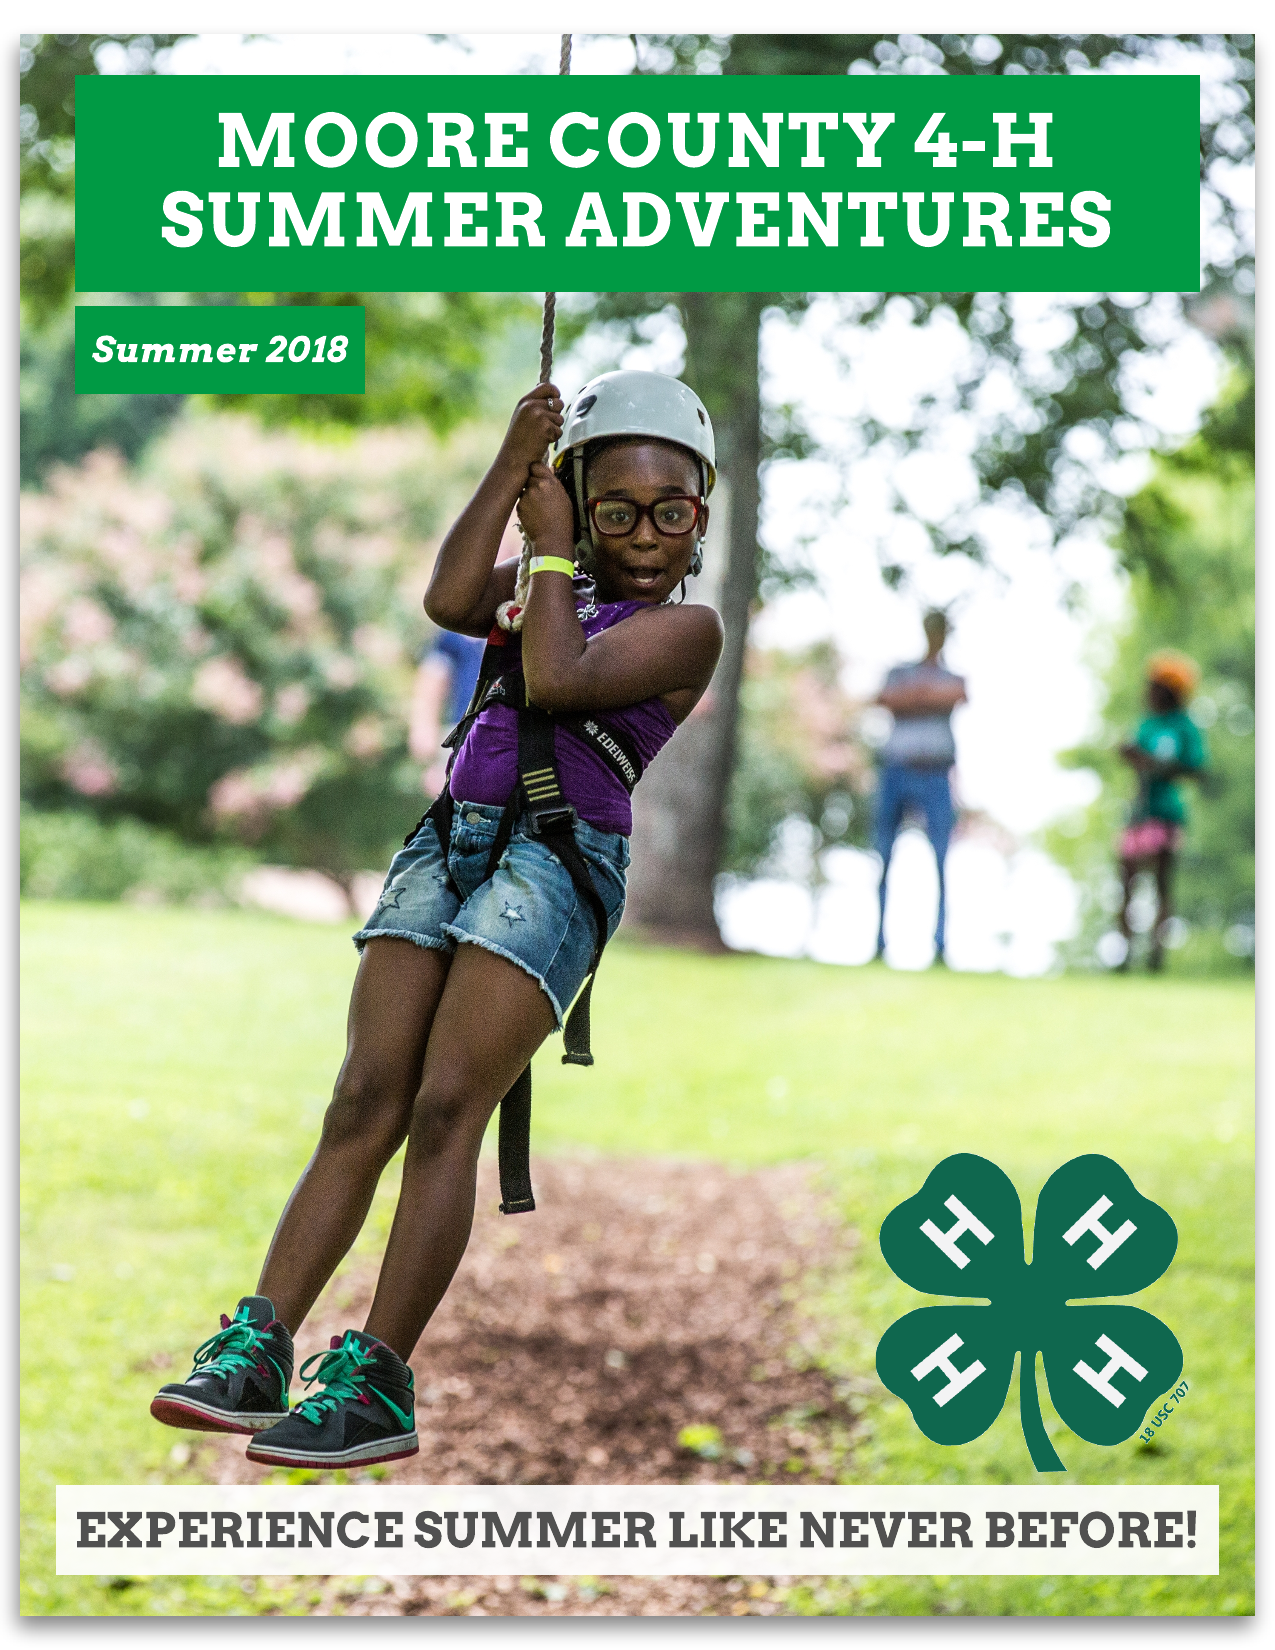 Moore County 4-H Summer Adventures